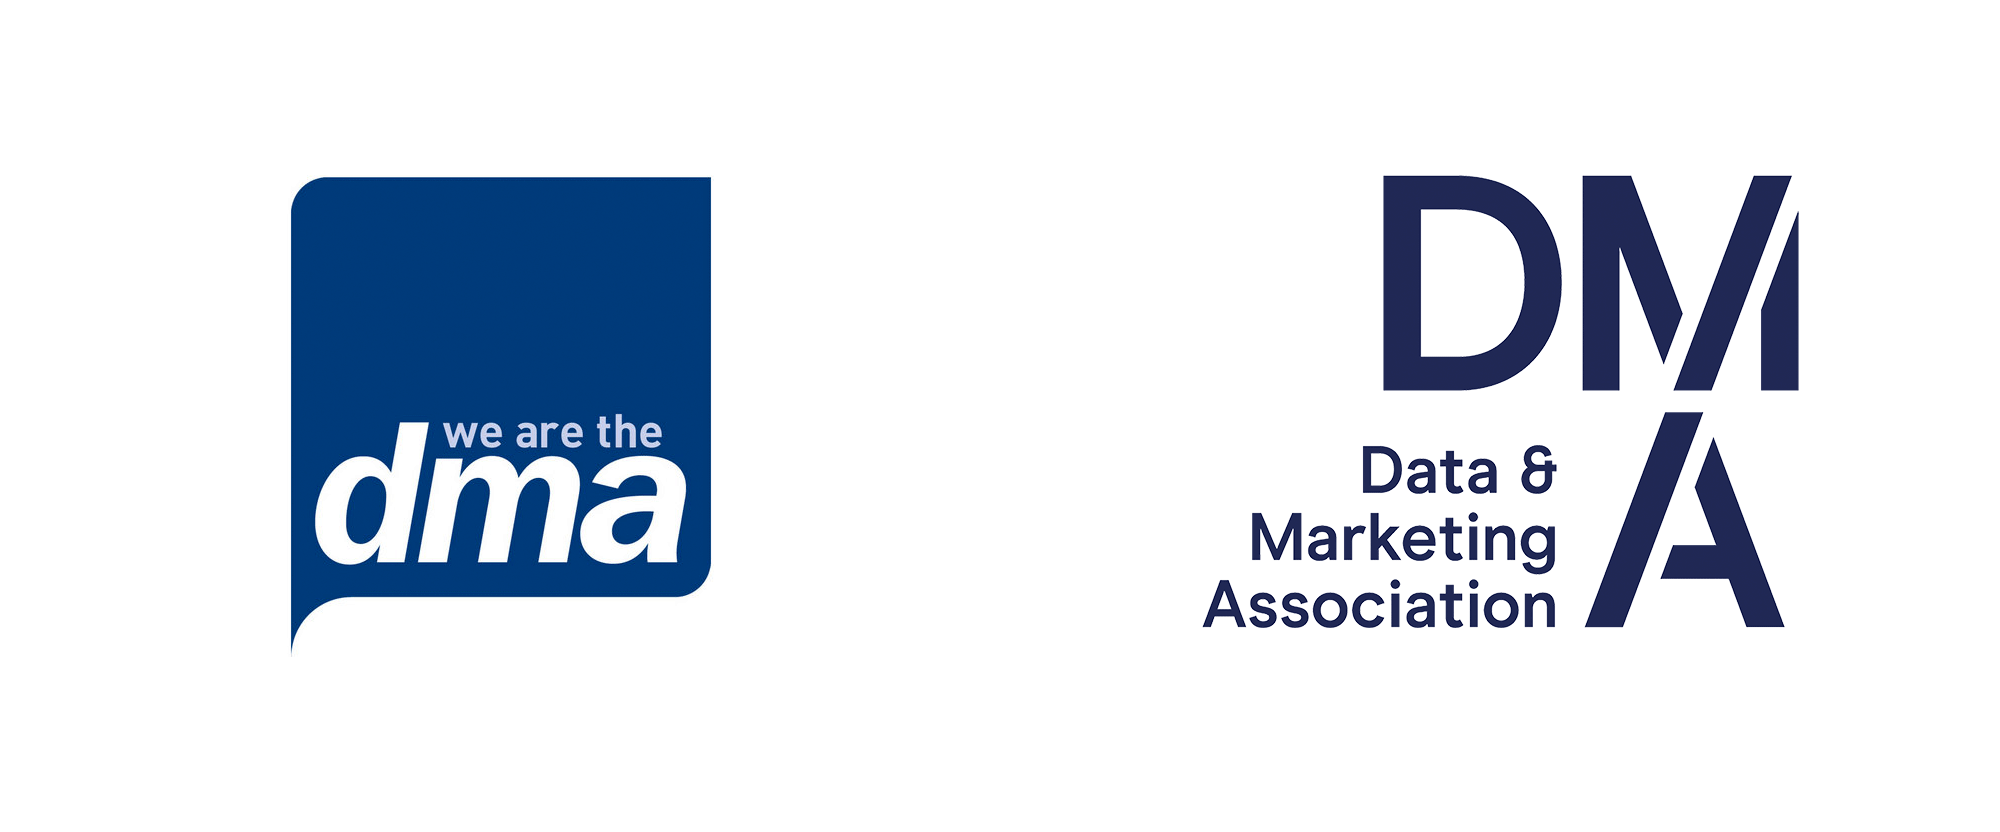 New Logo and Identity for Data & Marketing Association by Jack Renwick Studio